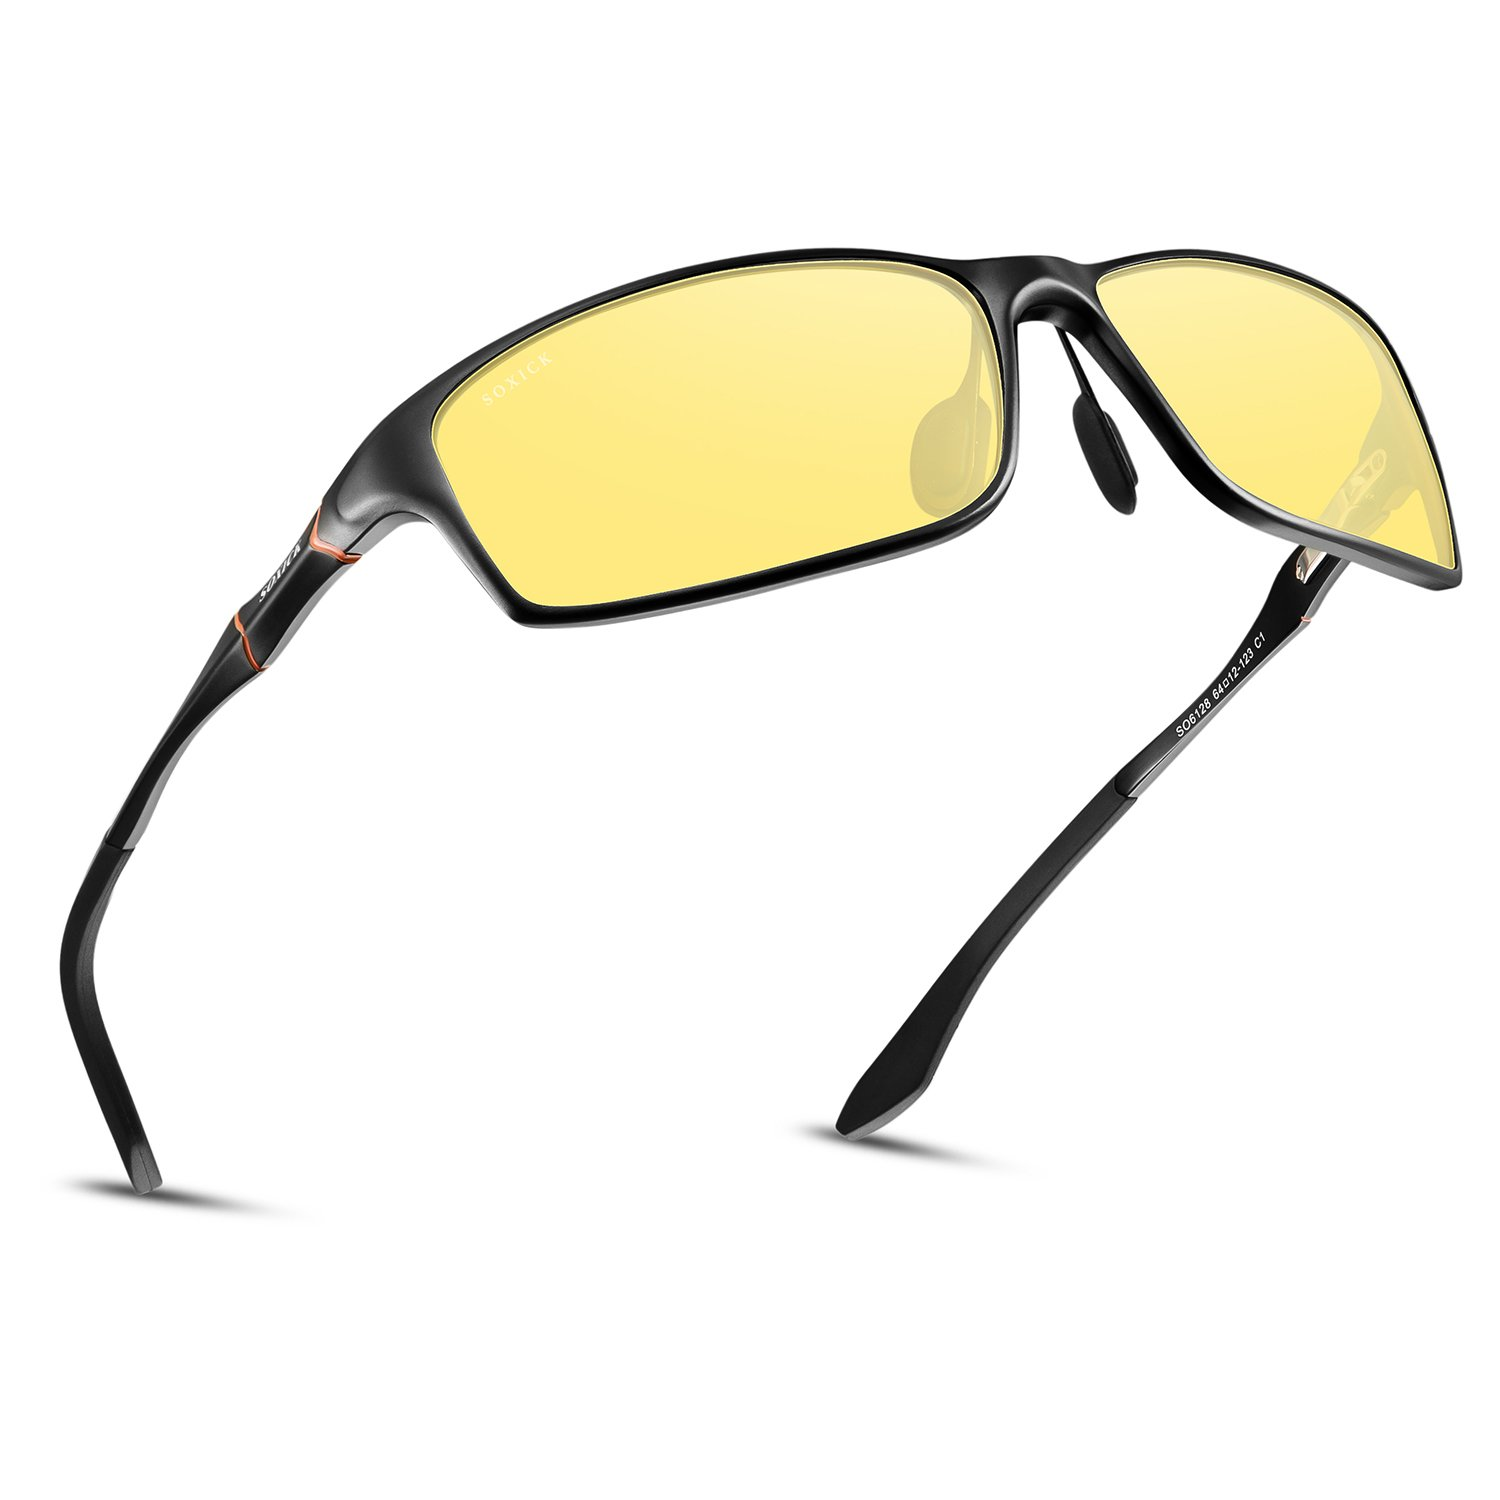 SOXICK Night Time Driving Glasses, Polarized Anti Glare Night Vision Glasses